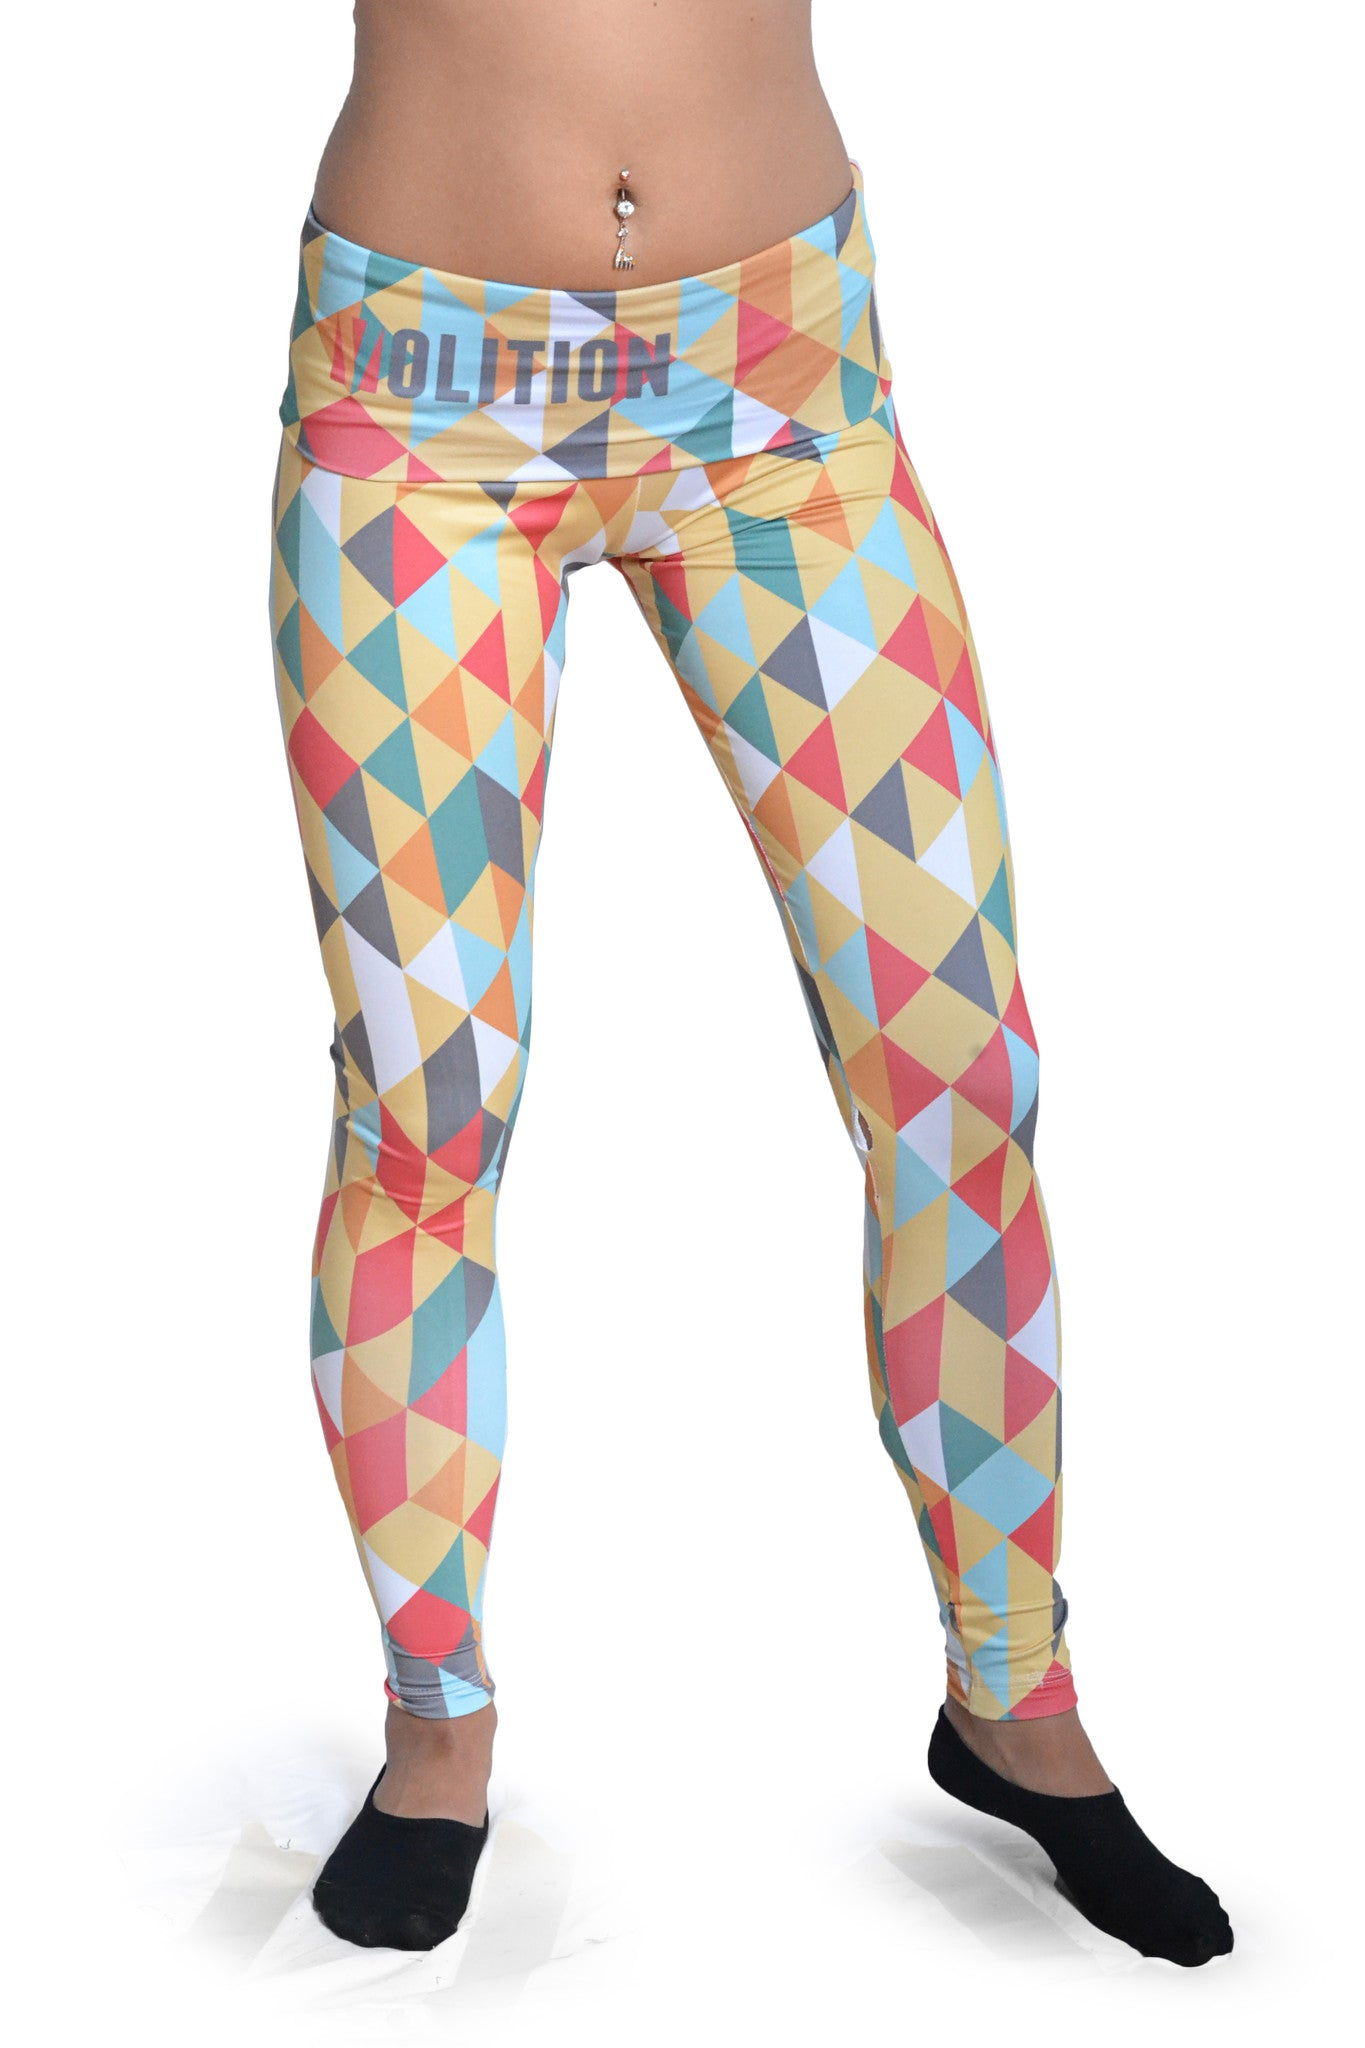 Women's Graphic All Over Print Sahara Yoga Leggings